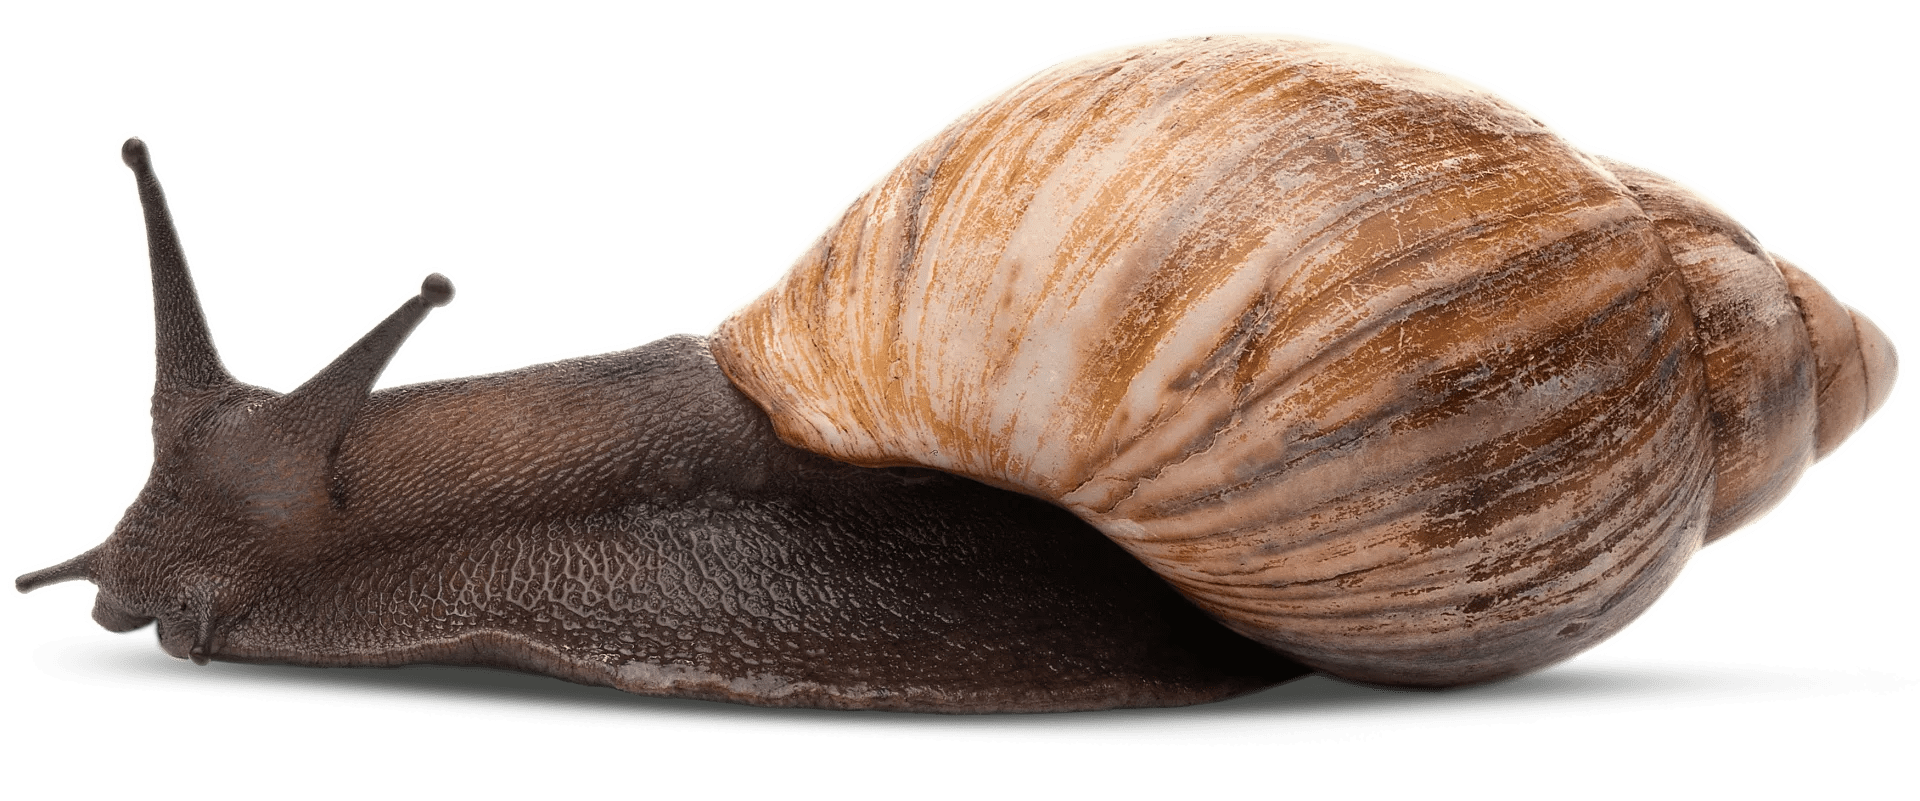 Giant African Snail Facts